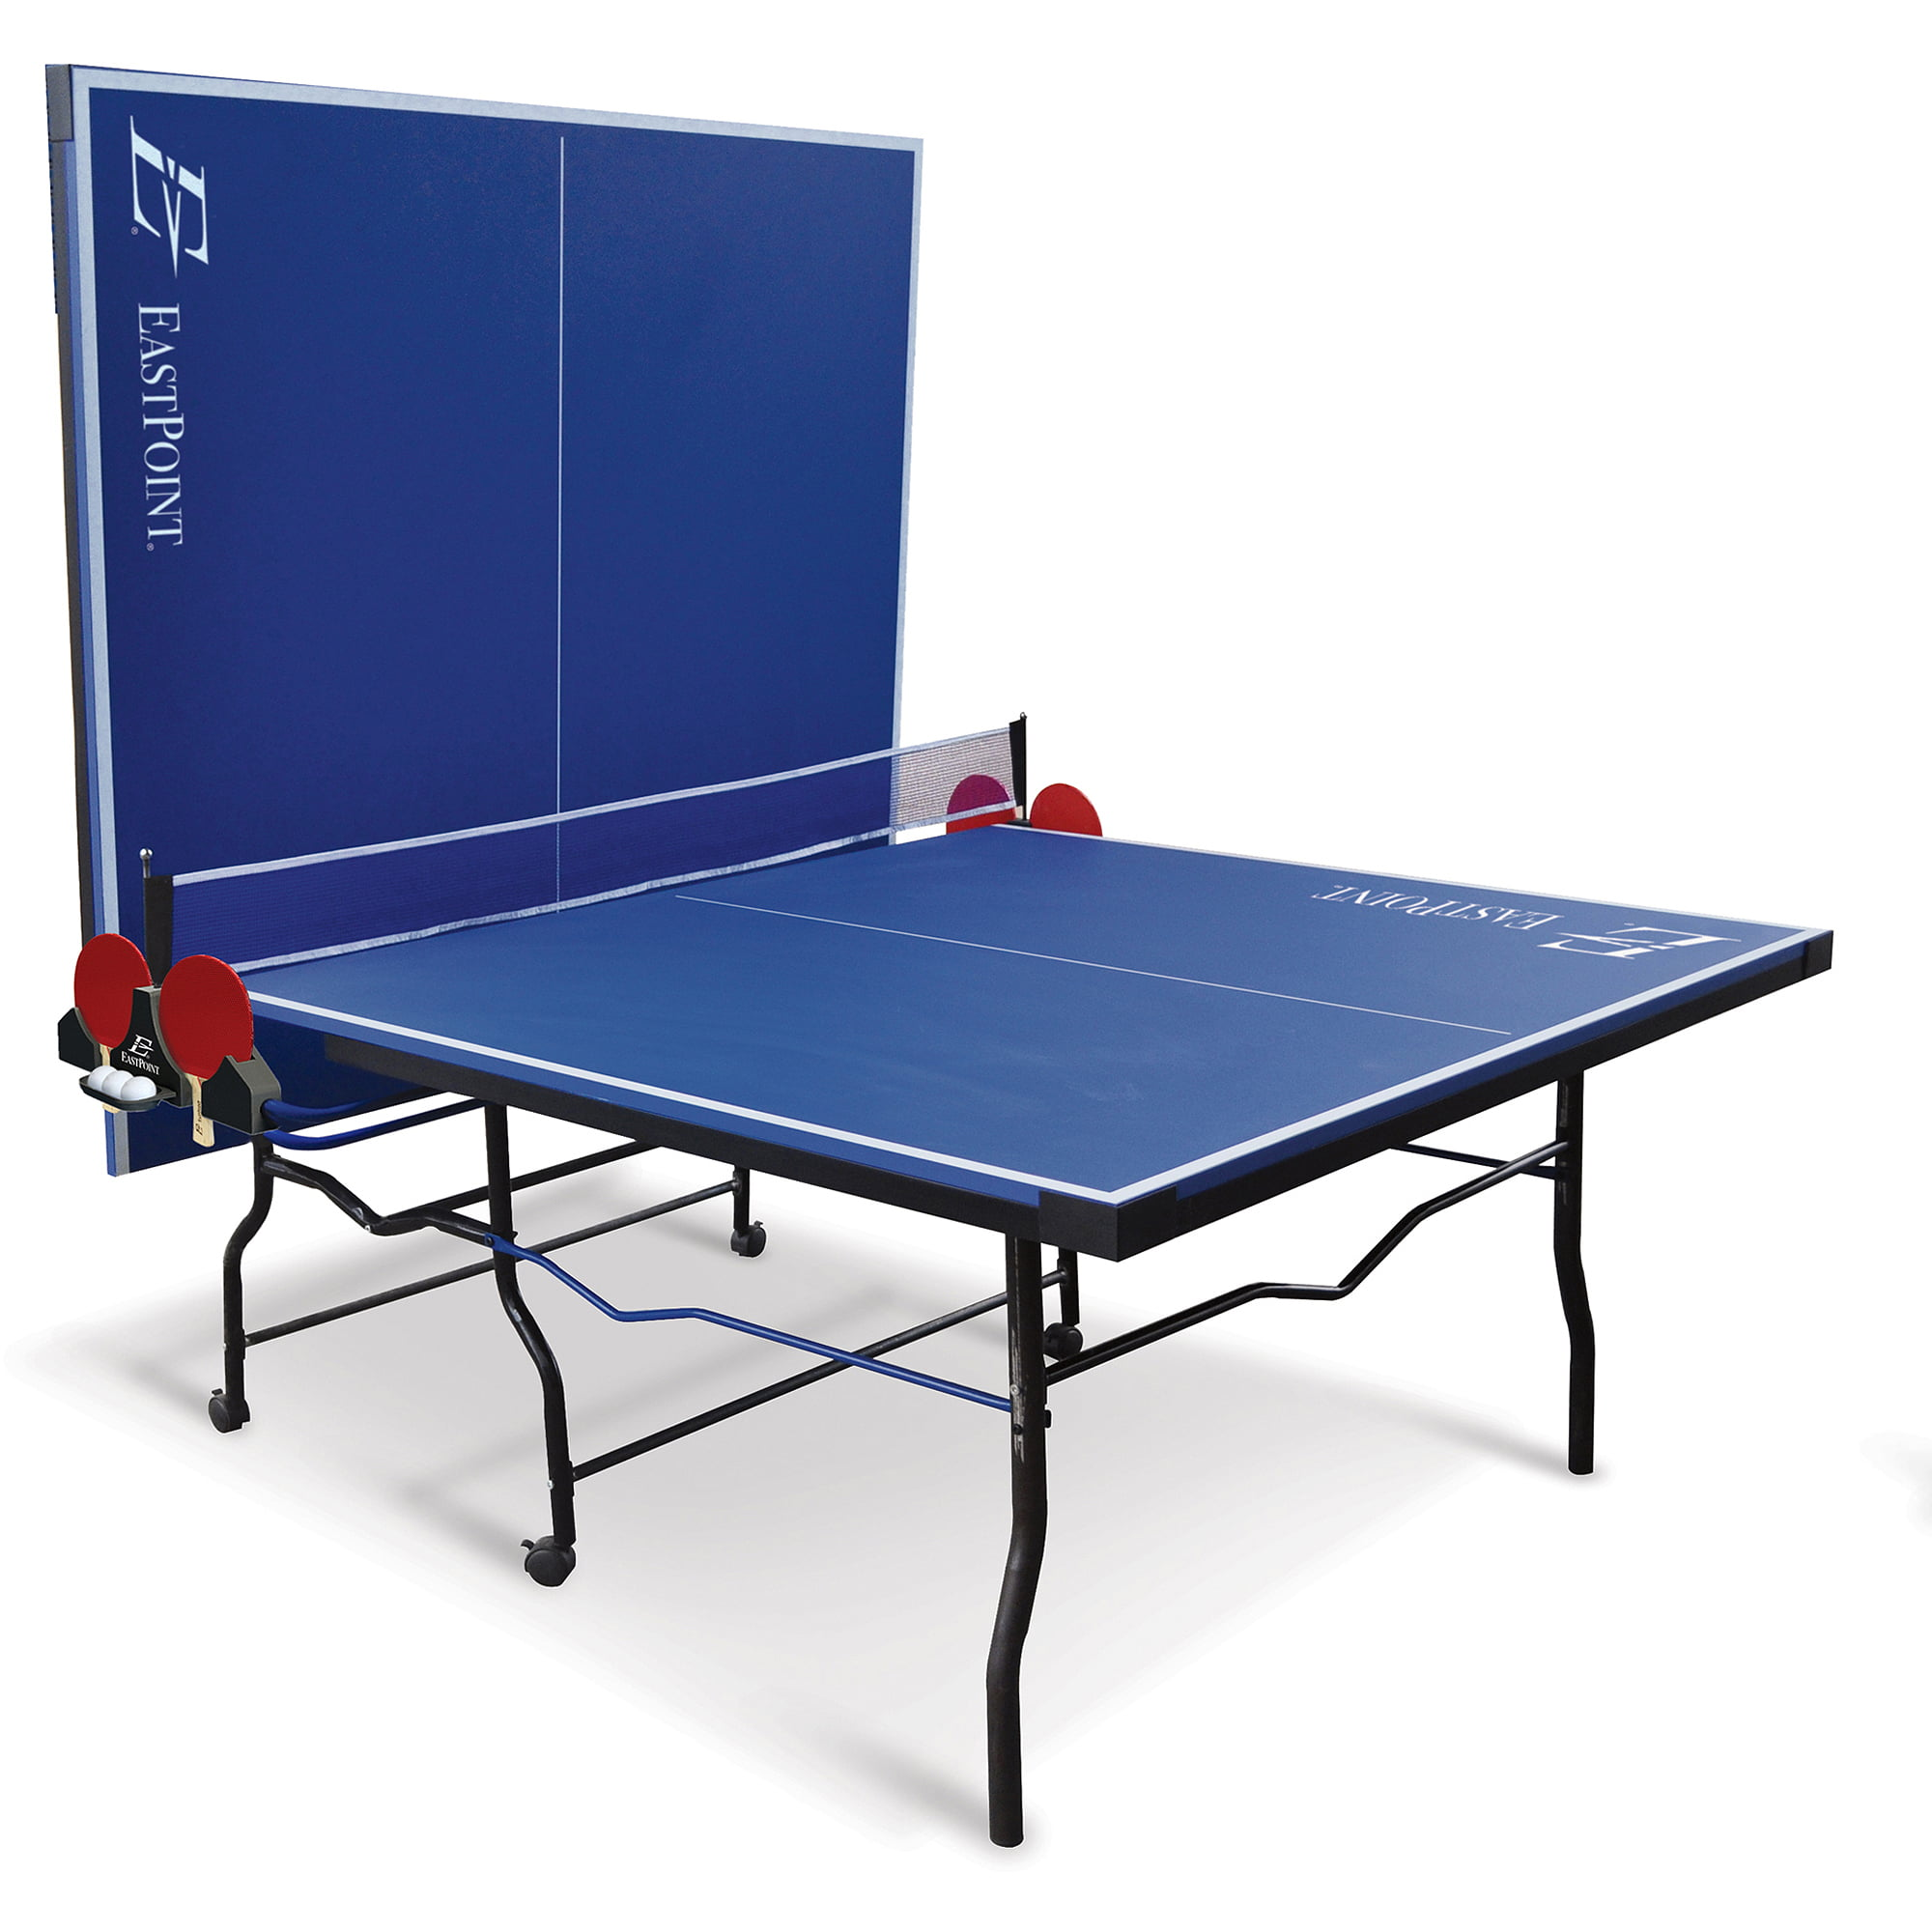 Sportspower 4pc Table Tennis Assembly Instructions Home